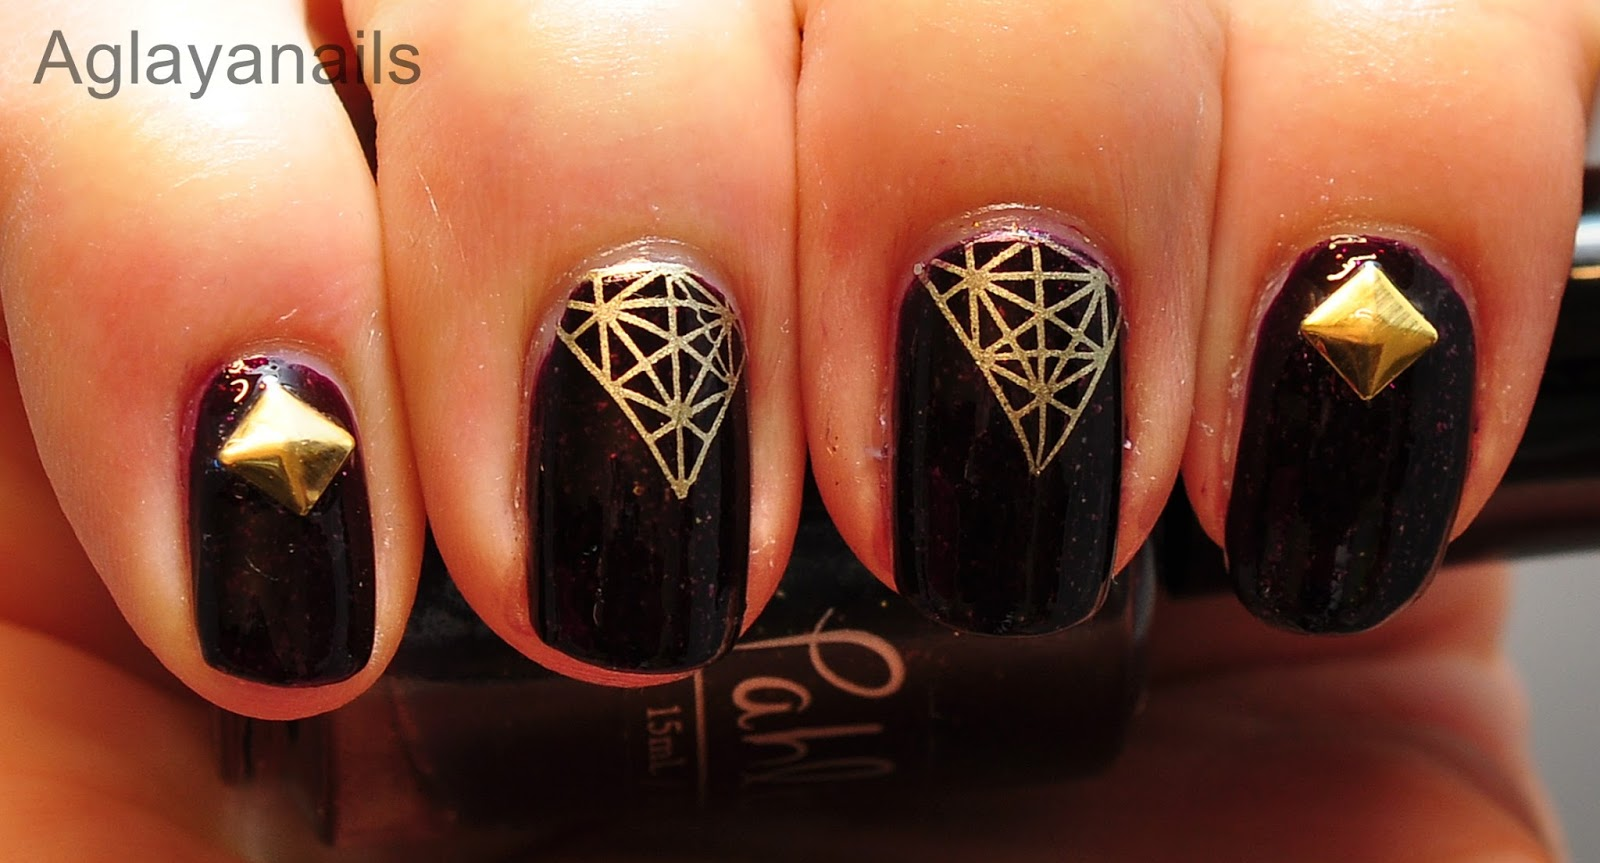 26 Great Nail Art Ideas Embellished 3d By Aglayanails